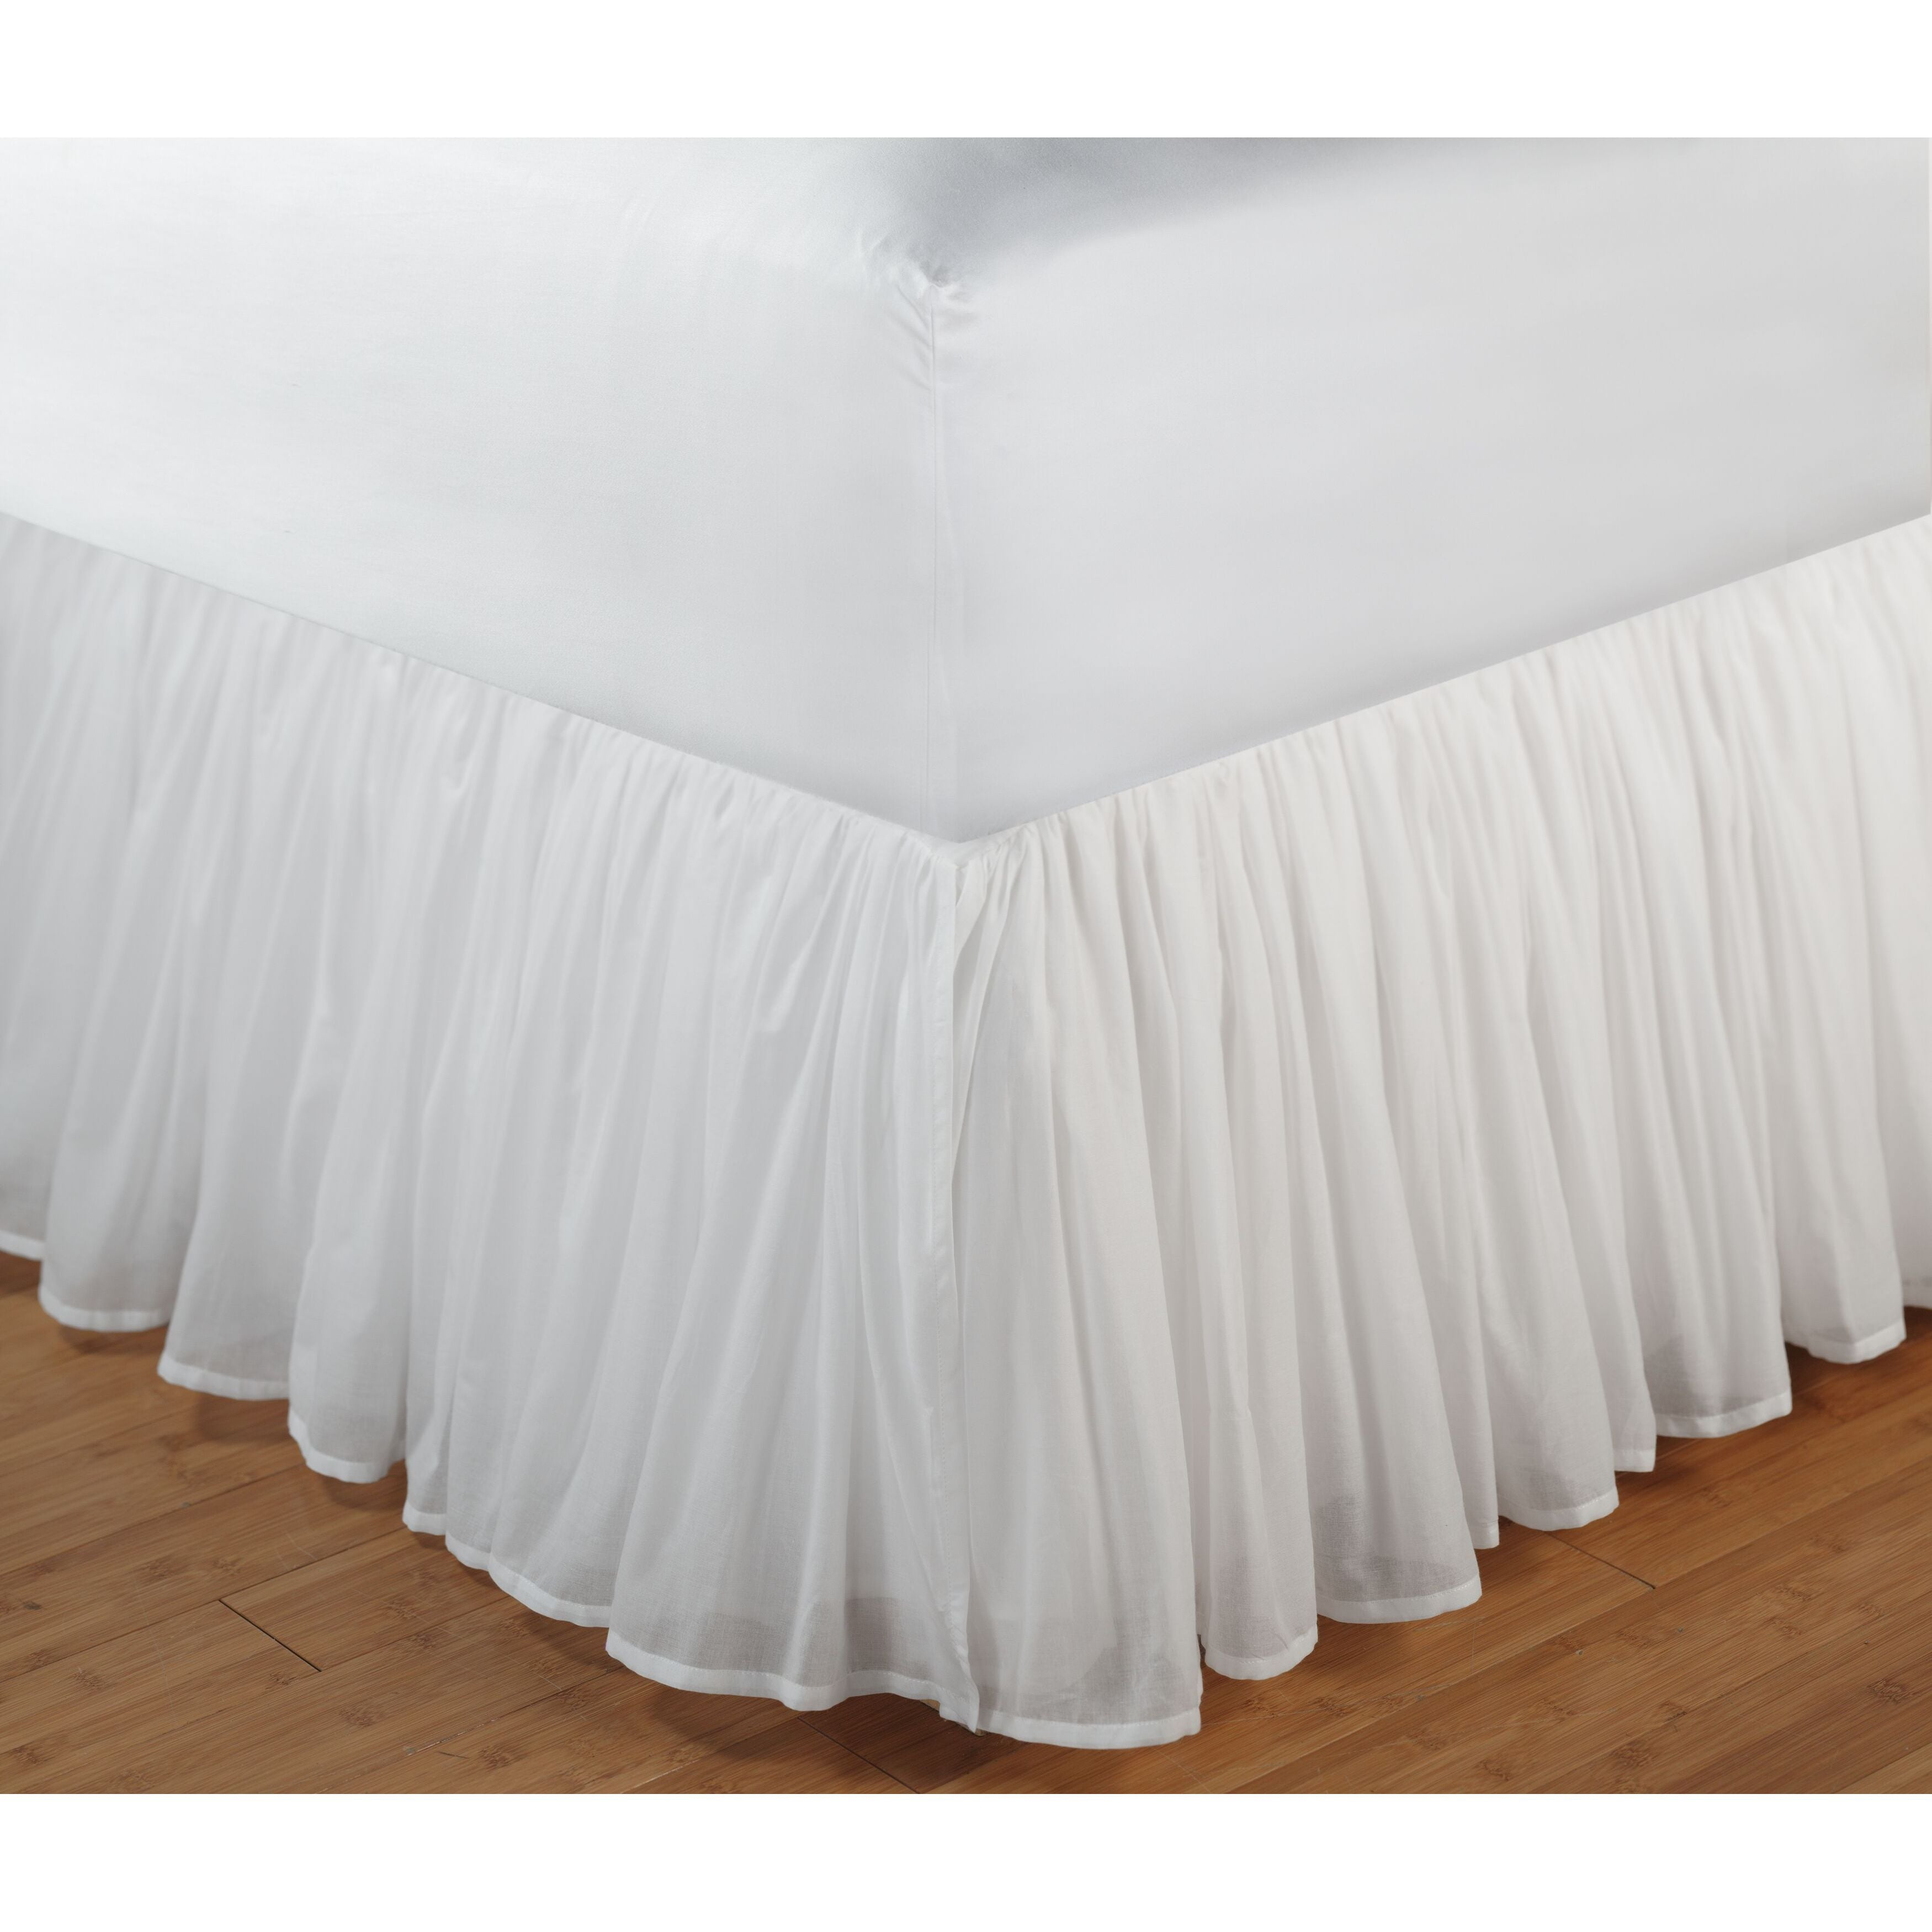 "Cotton Voile White Bed Skirt 15"" Bed Skirt By Greenland Home Fashions"